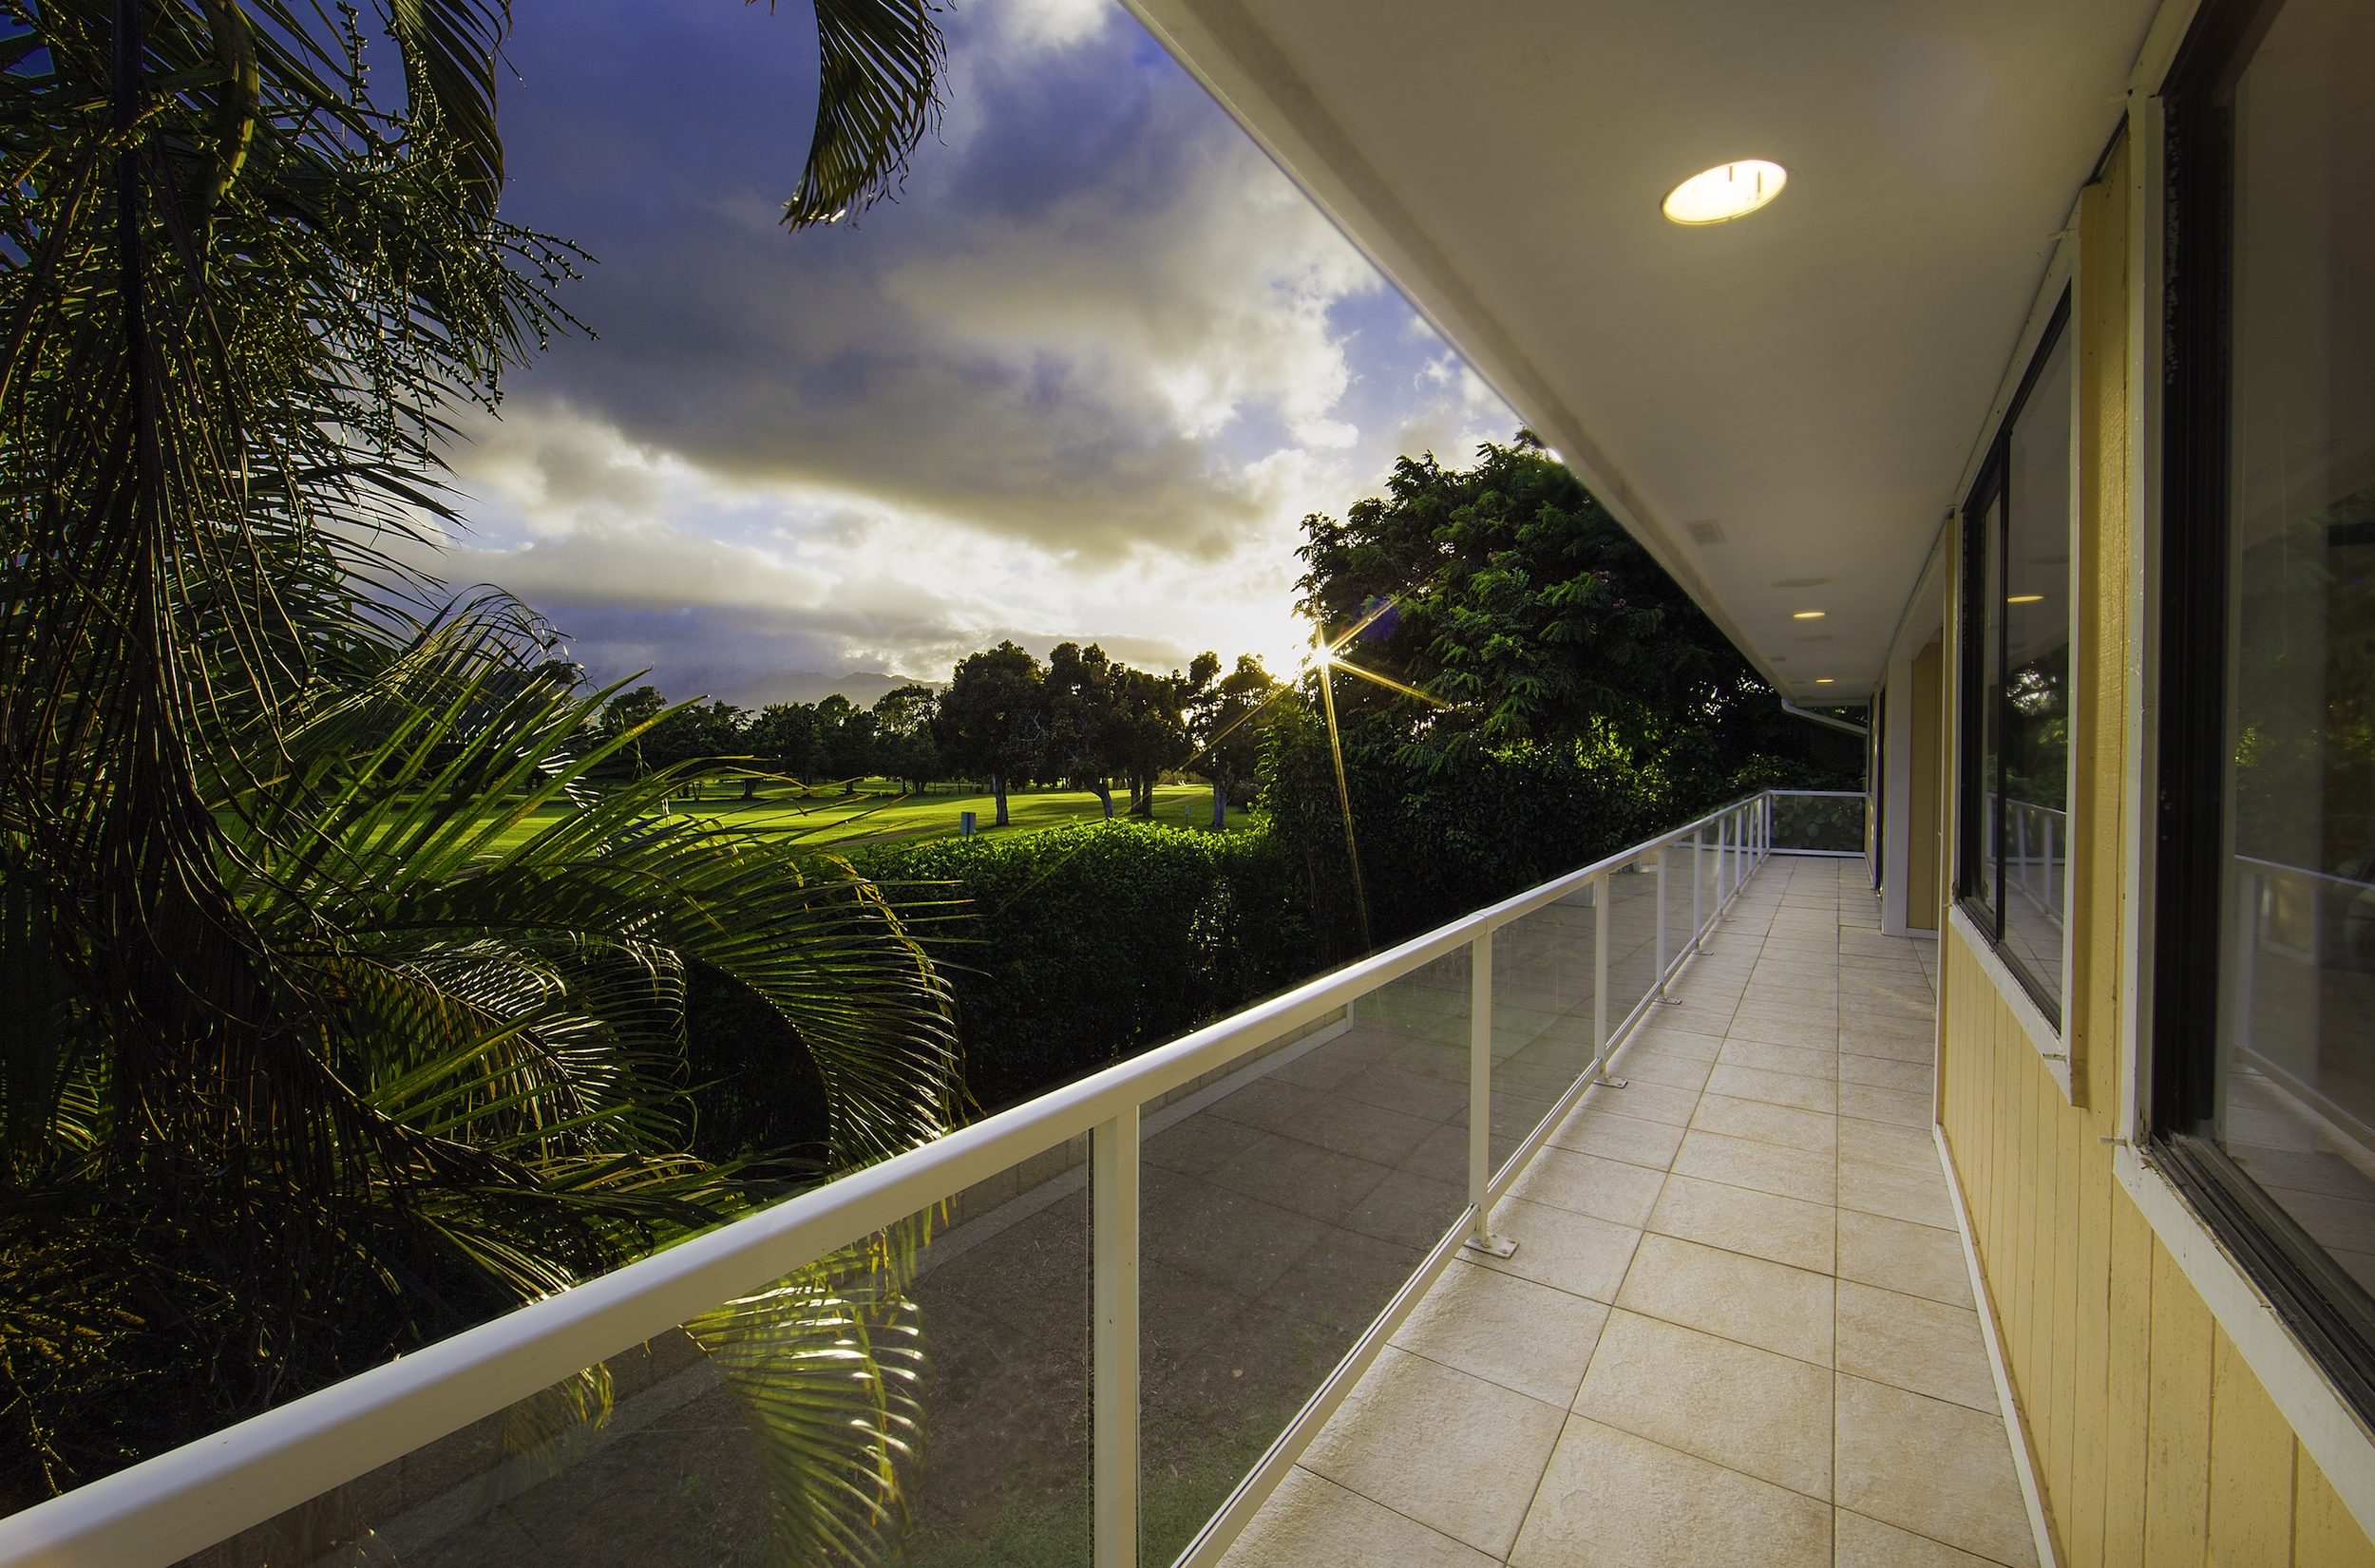 Moradia para Venda às Custom Home with Golf Course Views 5135 Iolani Pl Princeville, Havaí, 96722 Estados Unidos